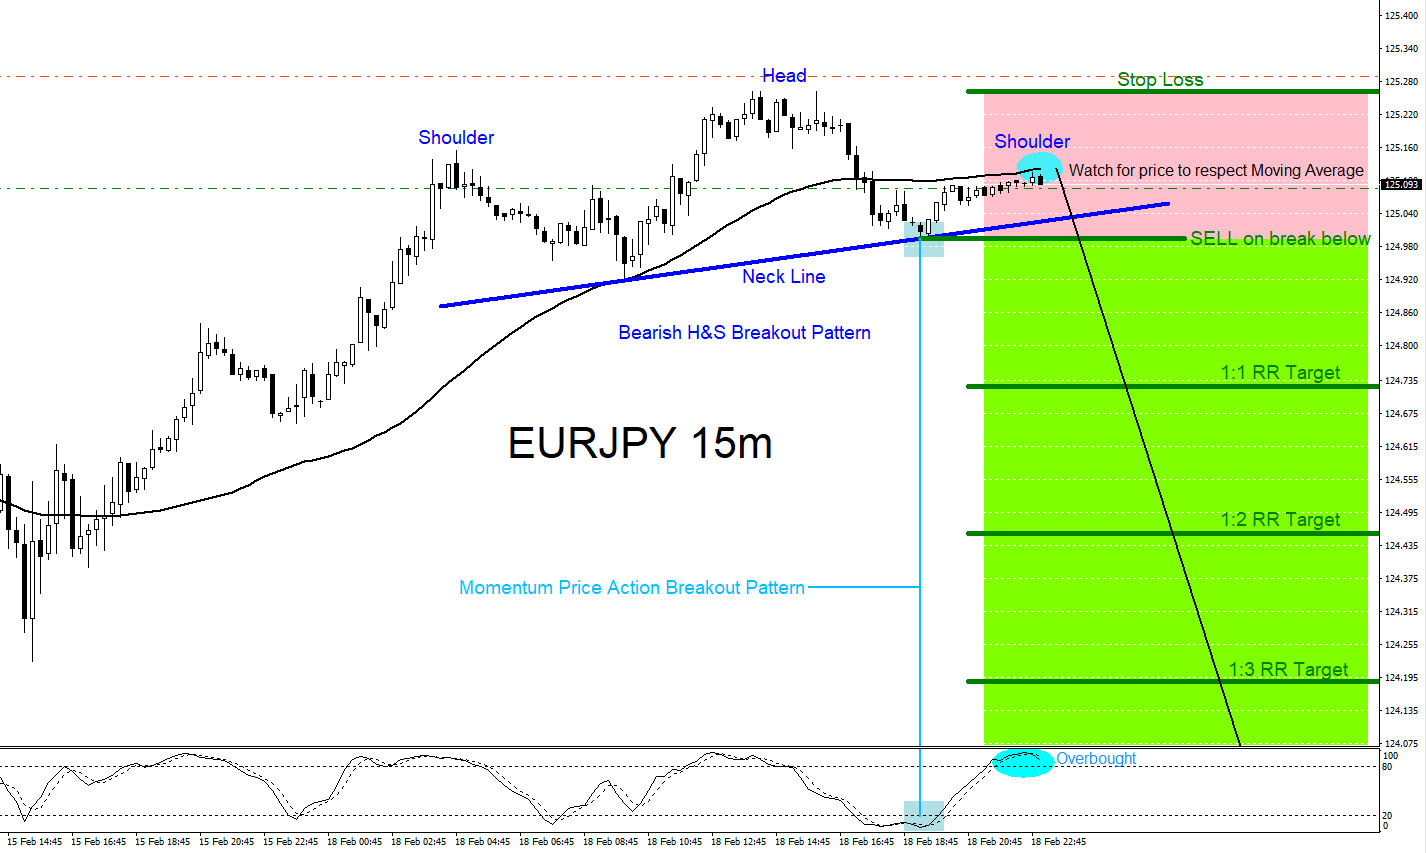 EURJPY Possible Breakout Lower?